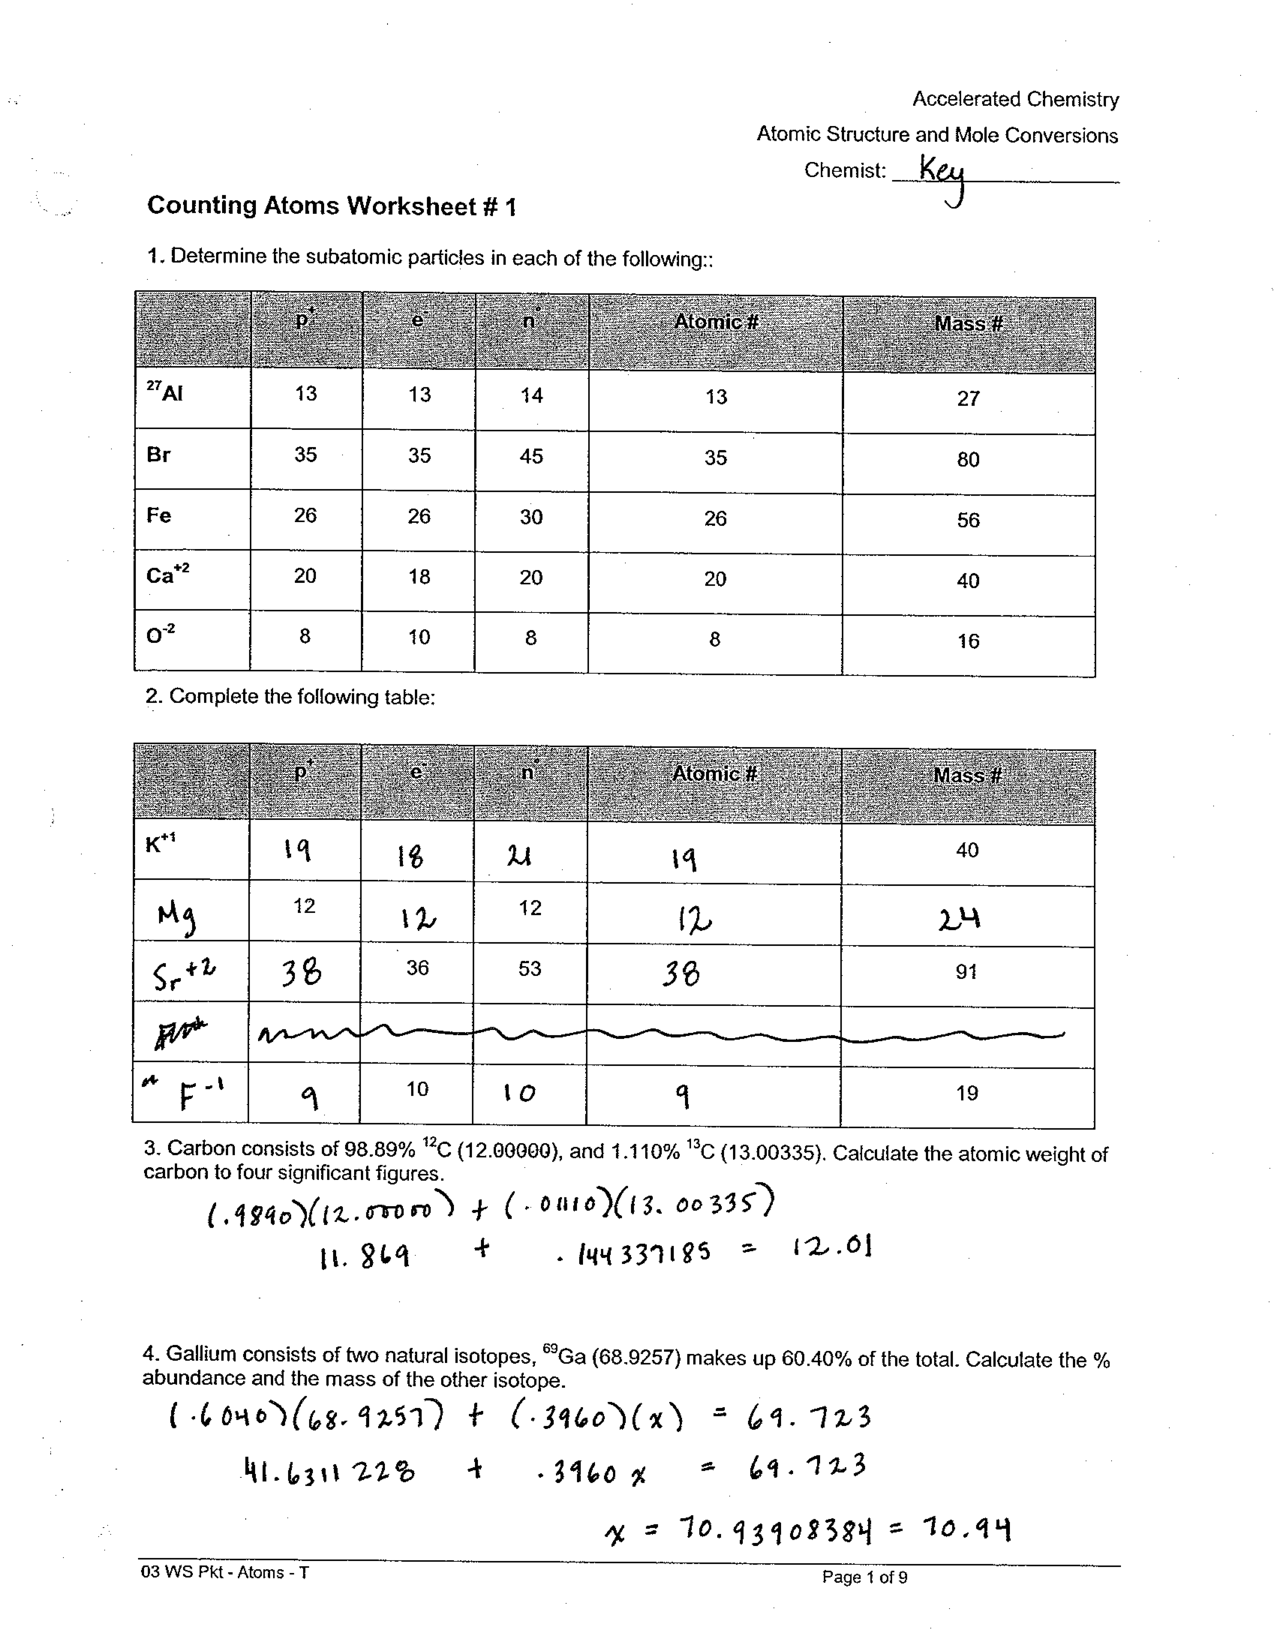 Atoms Ions Isotopes Practice Worksheet